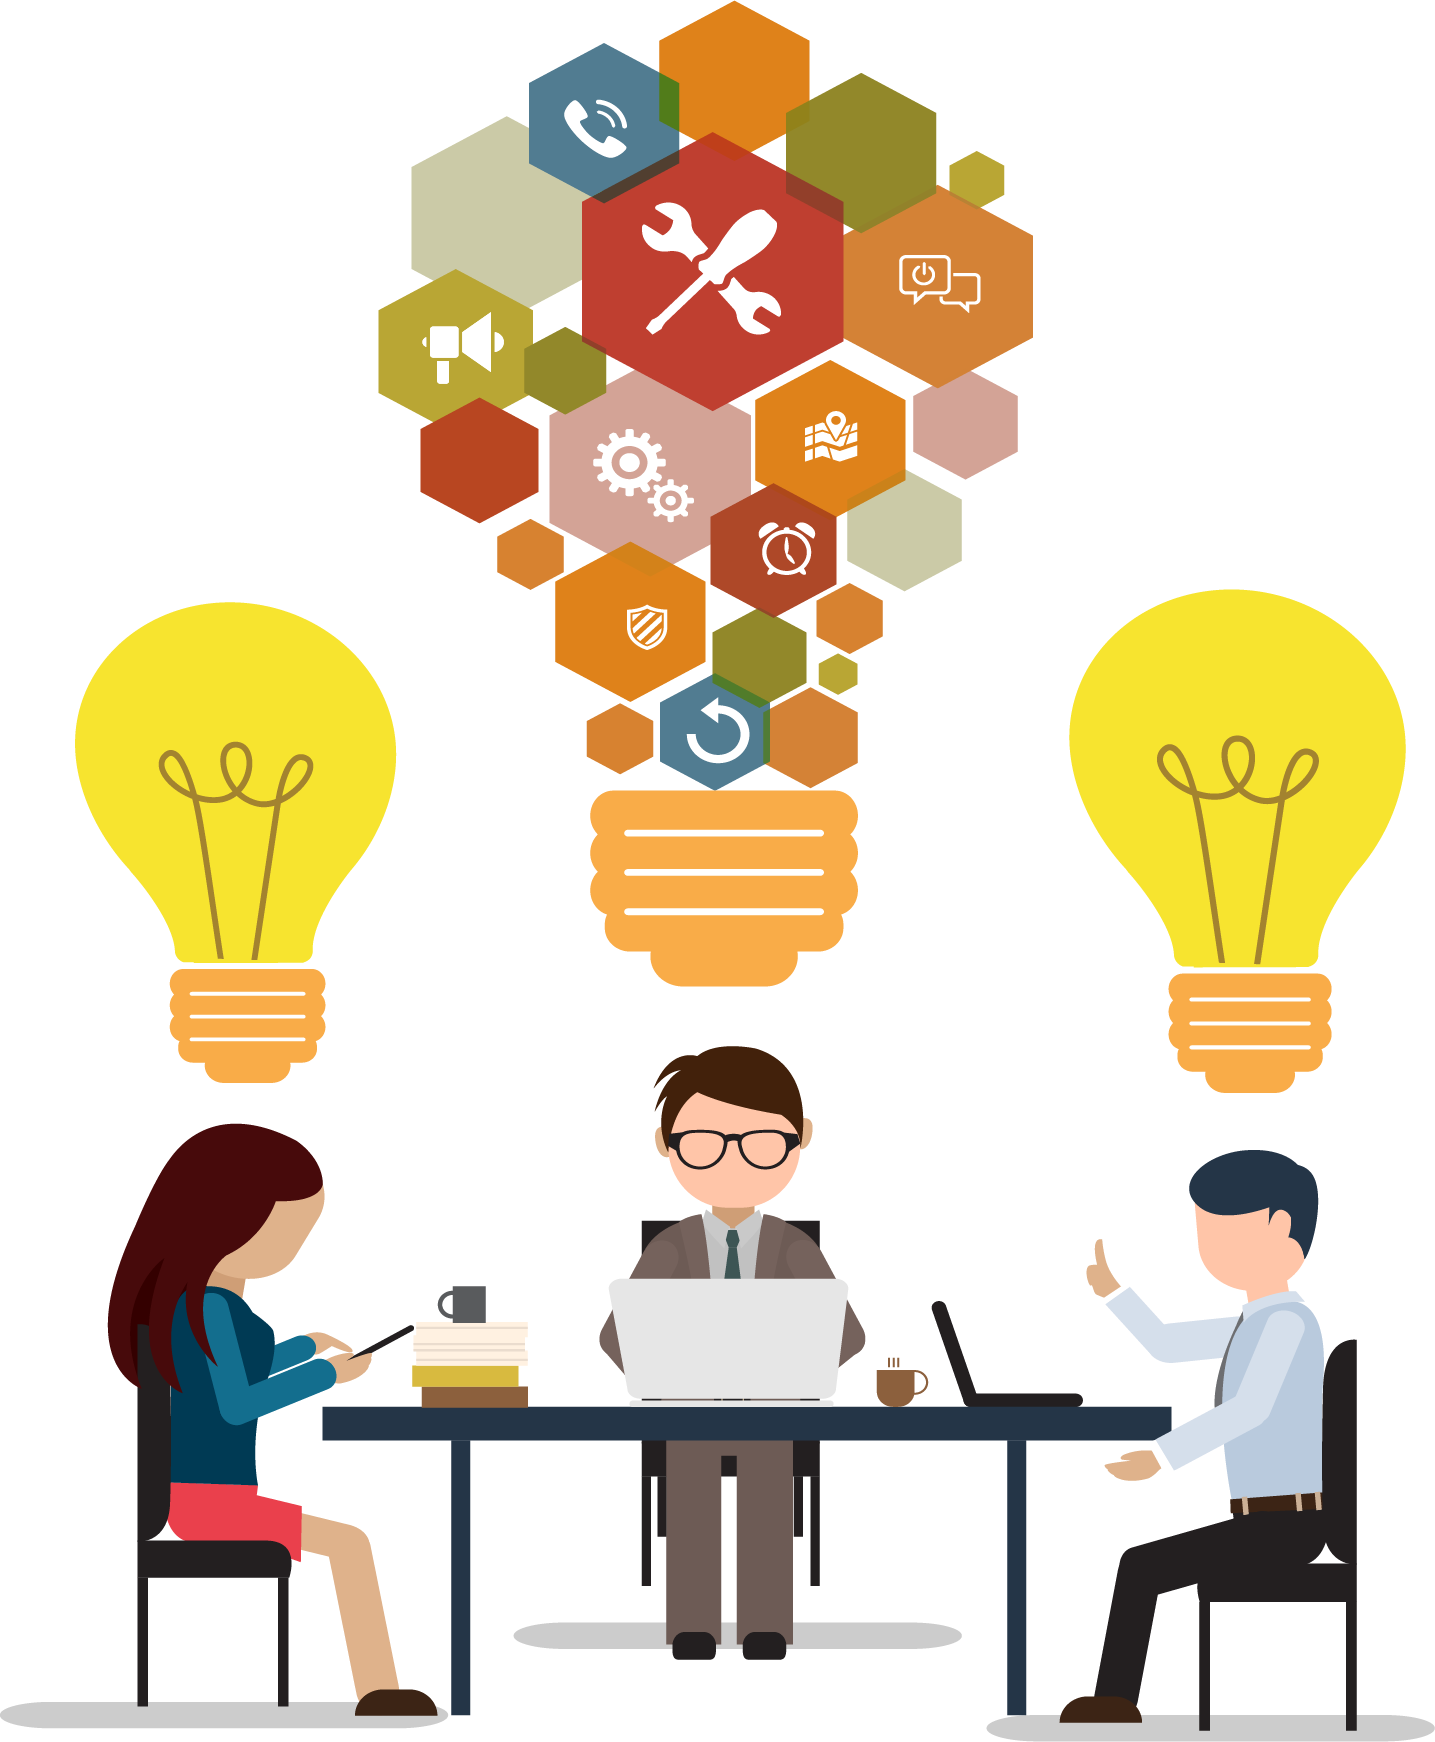 Puzzle clipart light bulb. Meeting office business transprent